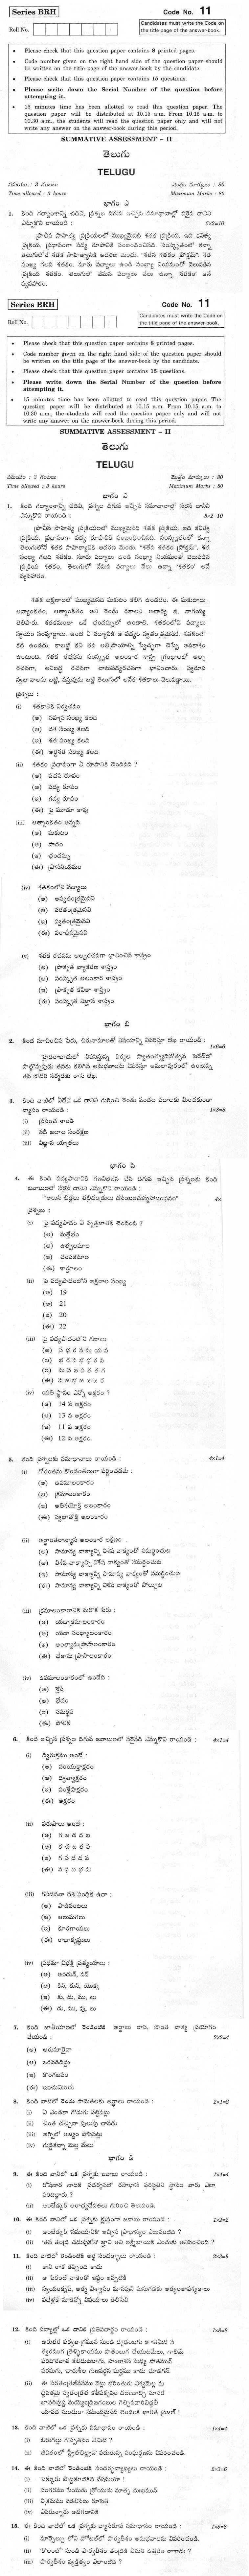 CBSE Class X Previous Year Question Papers 2012 Telugu